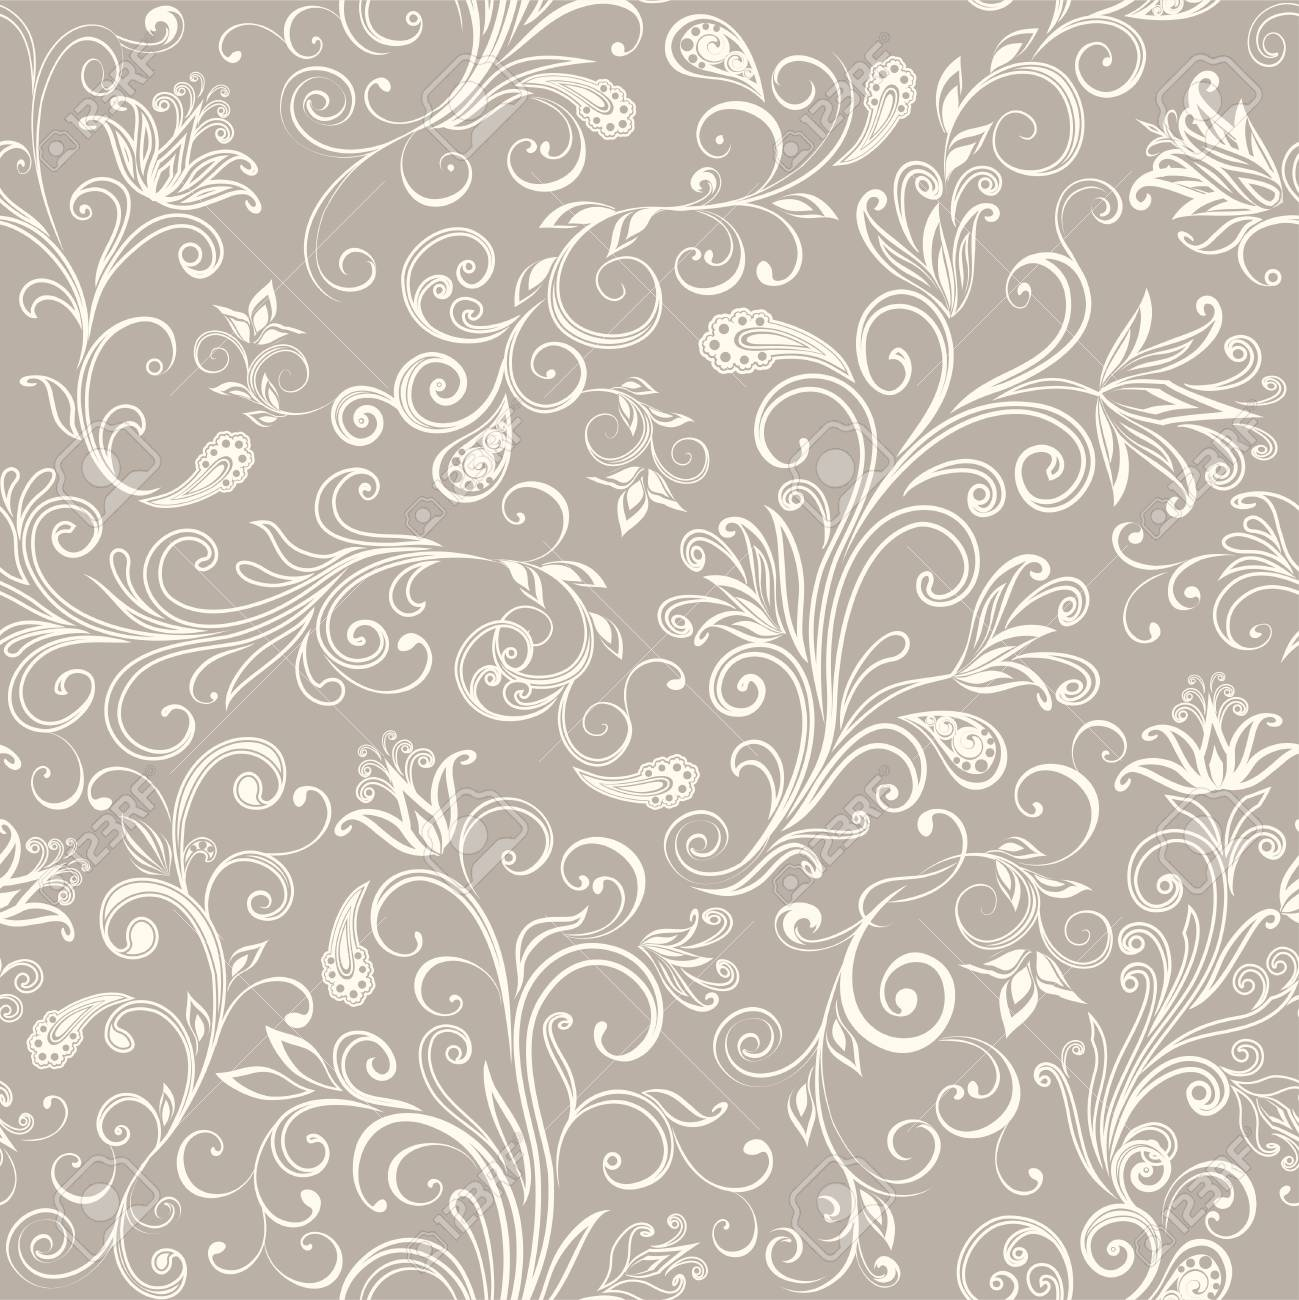 Seamless pattern in ethnic traditional style. - 121437517